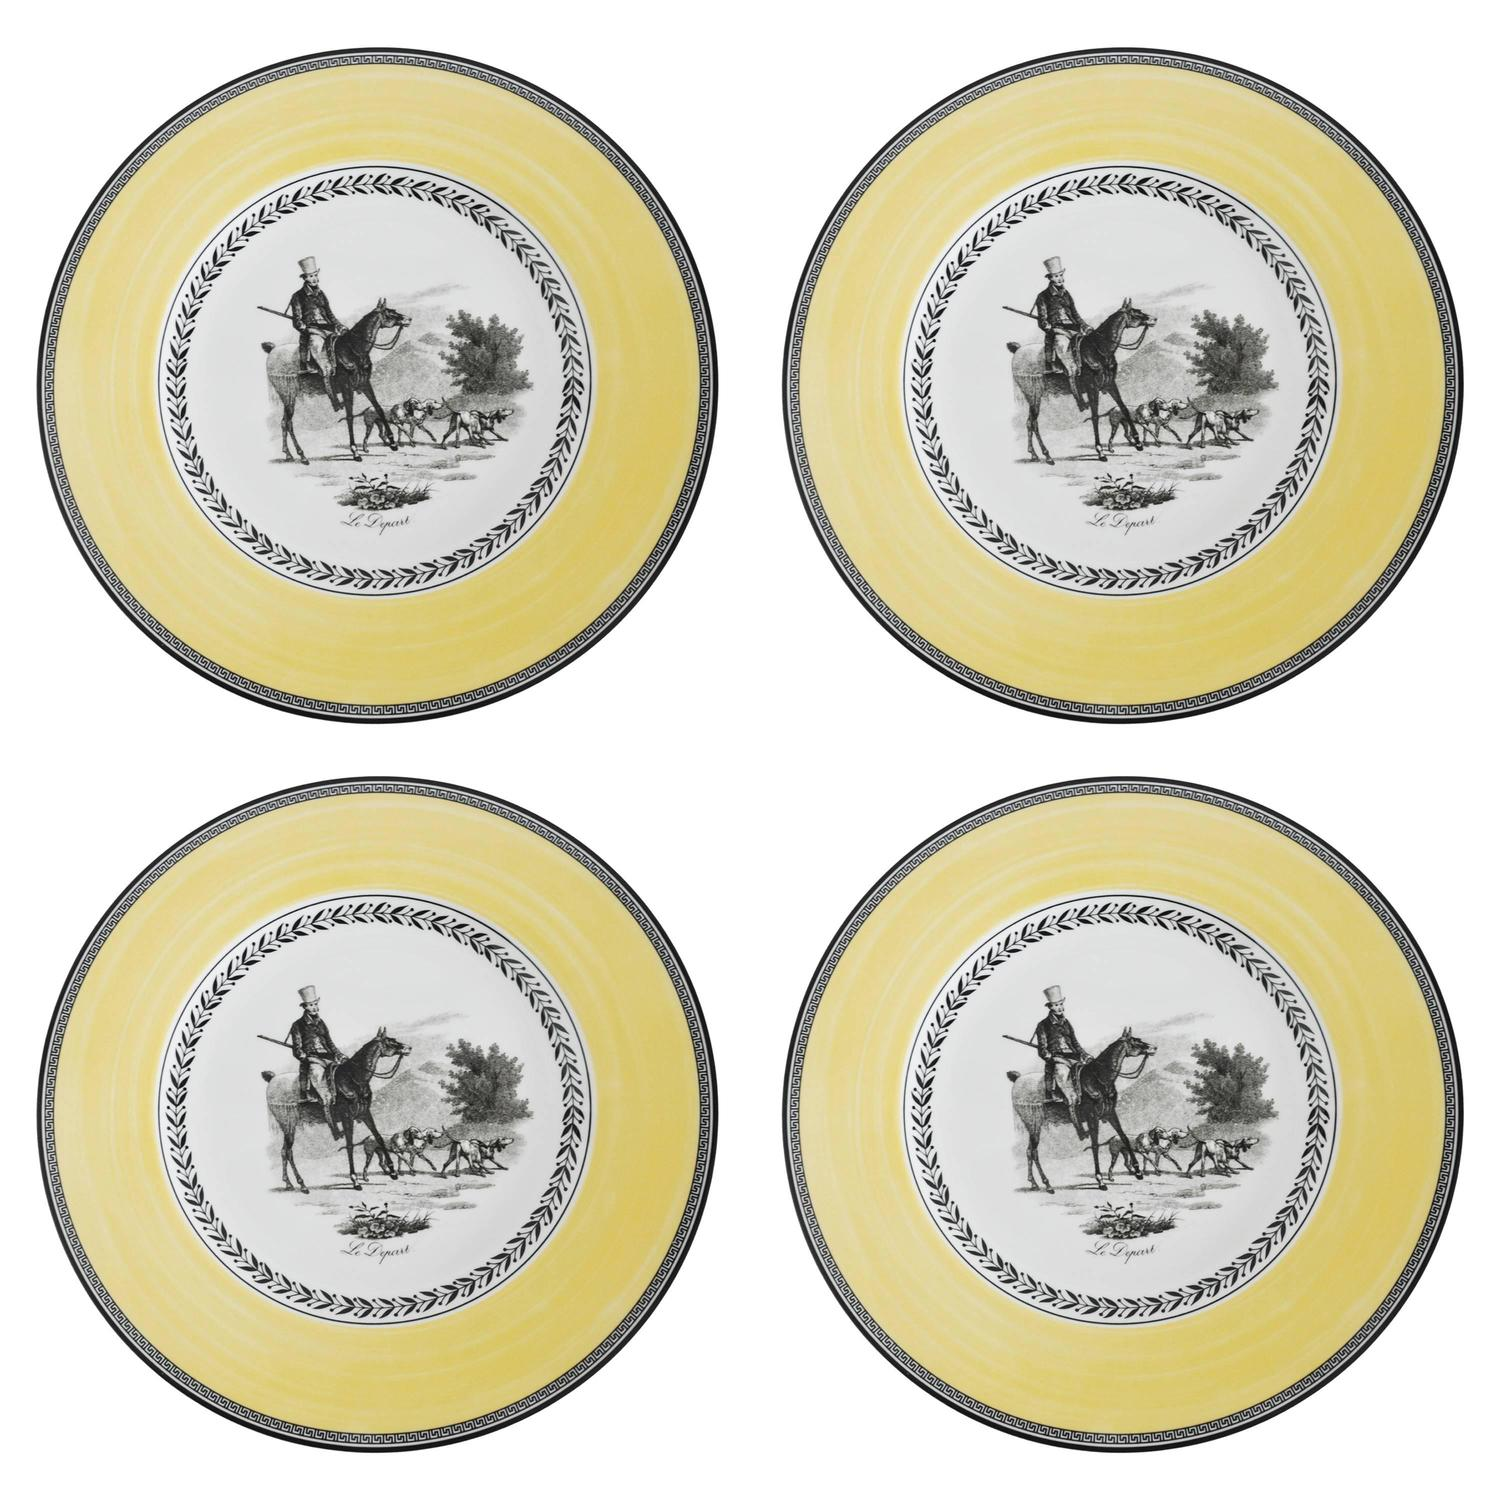 Villeroy and boch set of four plates for sale at 1stdibs for Villeroy and boch plates